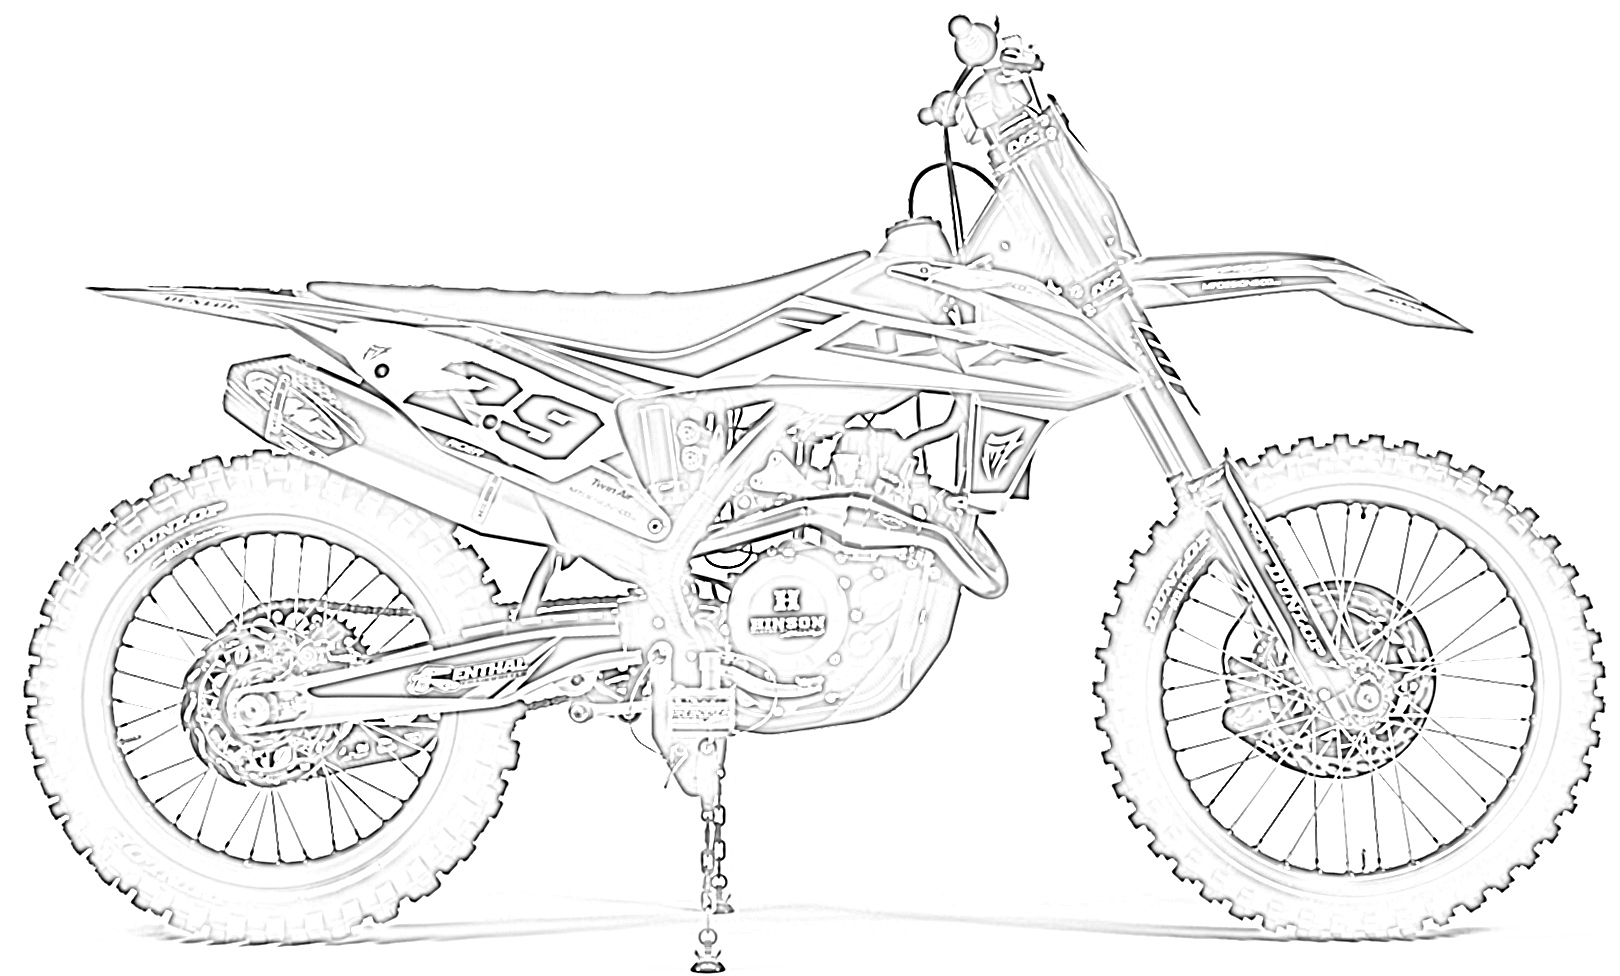 pictures of dirt bikes to color 10 free dirt bike coloring pages for kids save print to dirt bikes pictures color of